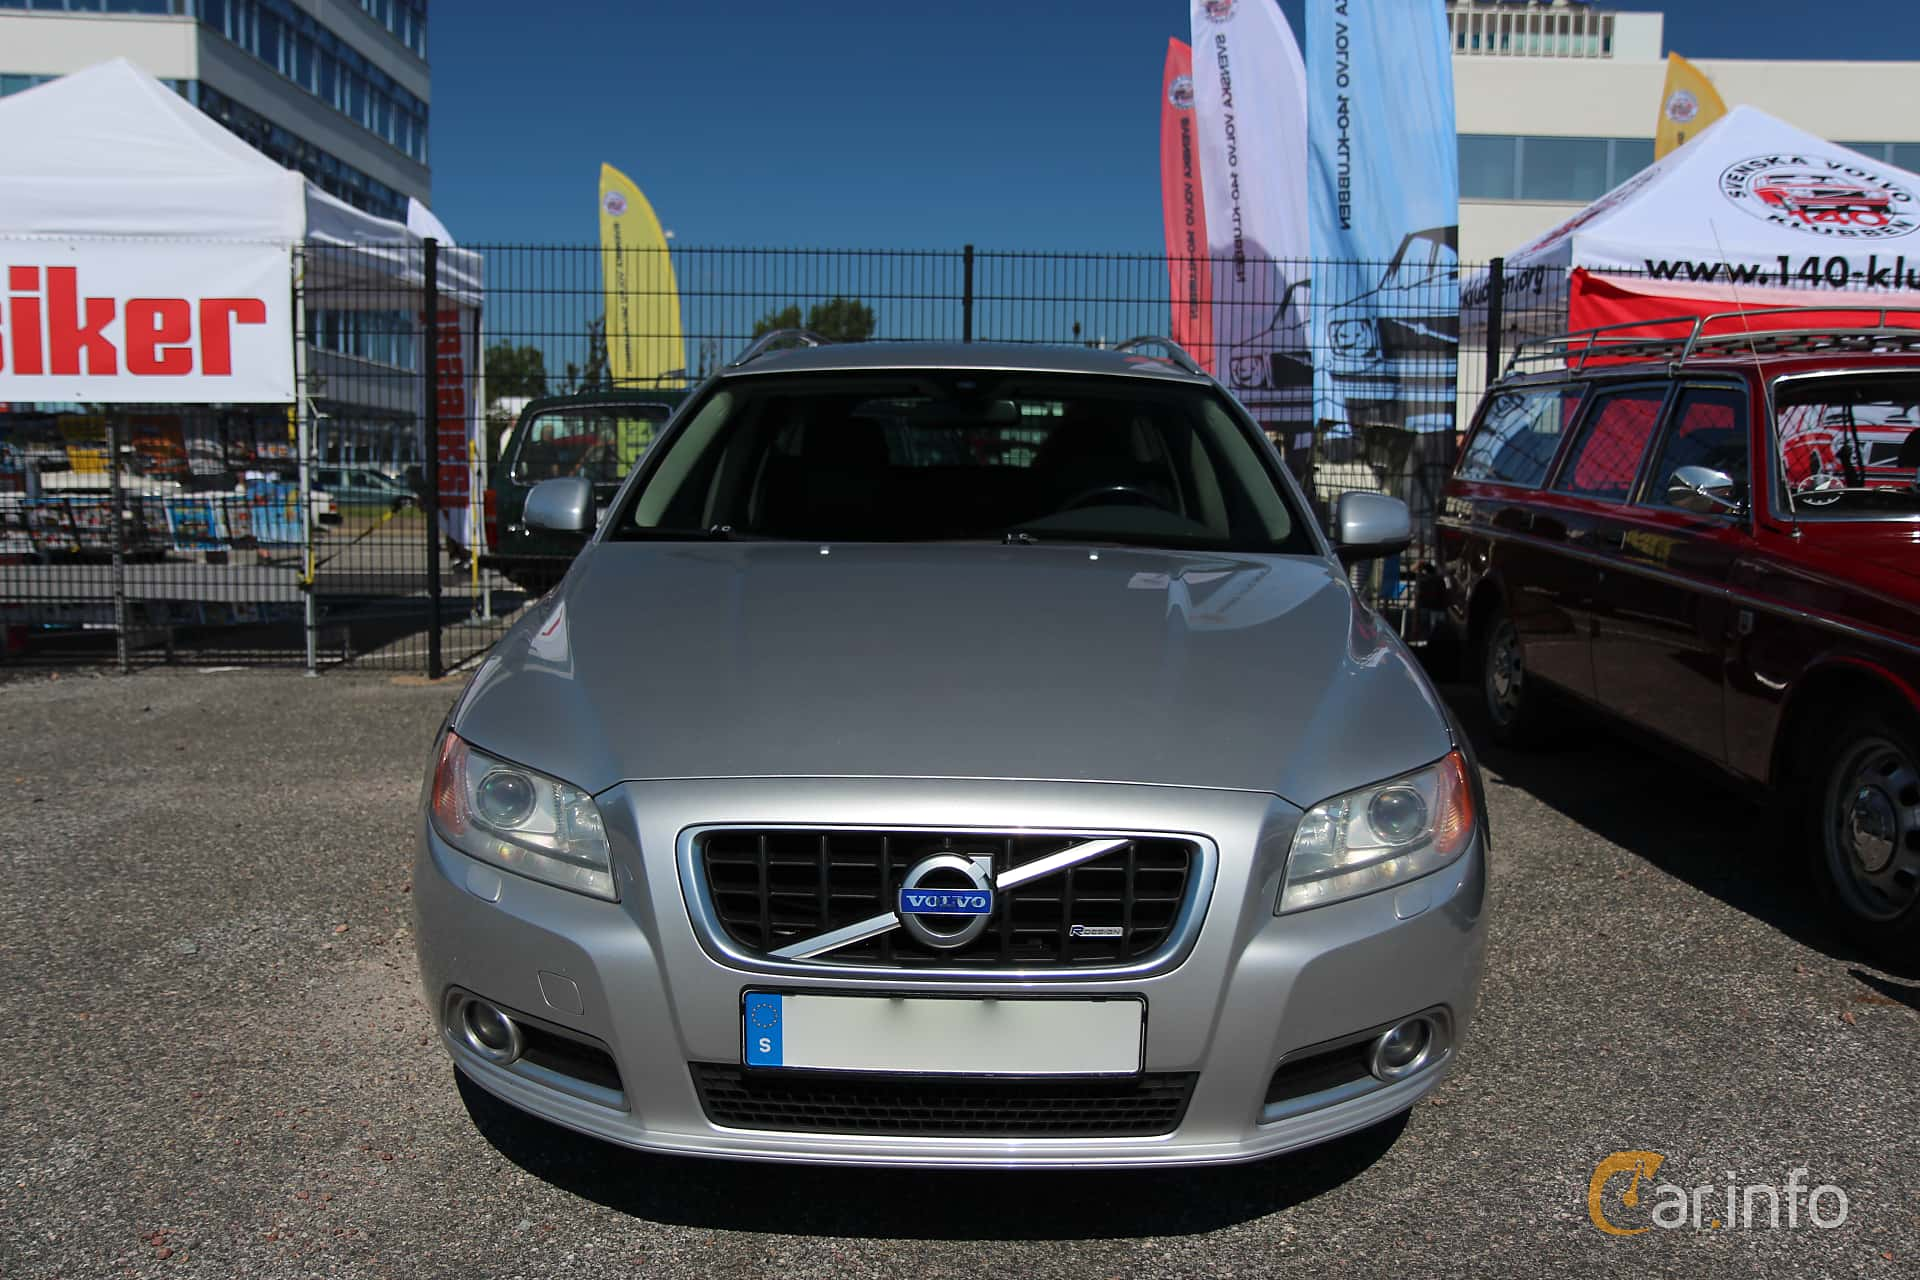 Front of Volvo V70 D5 Manual, 185ps, 2008 at Vrom - Volvo Rendezvous &